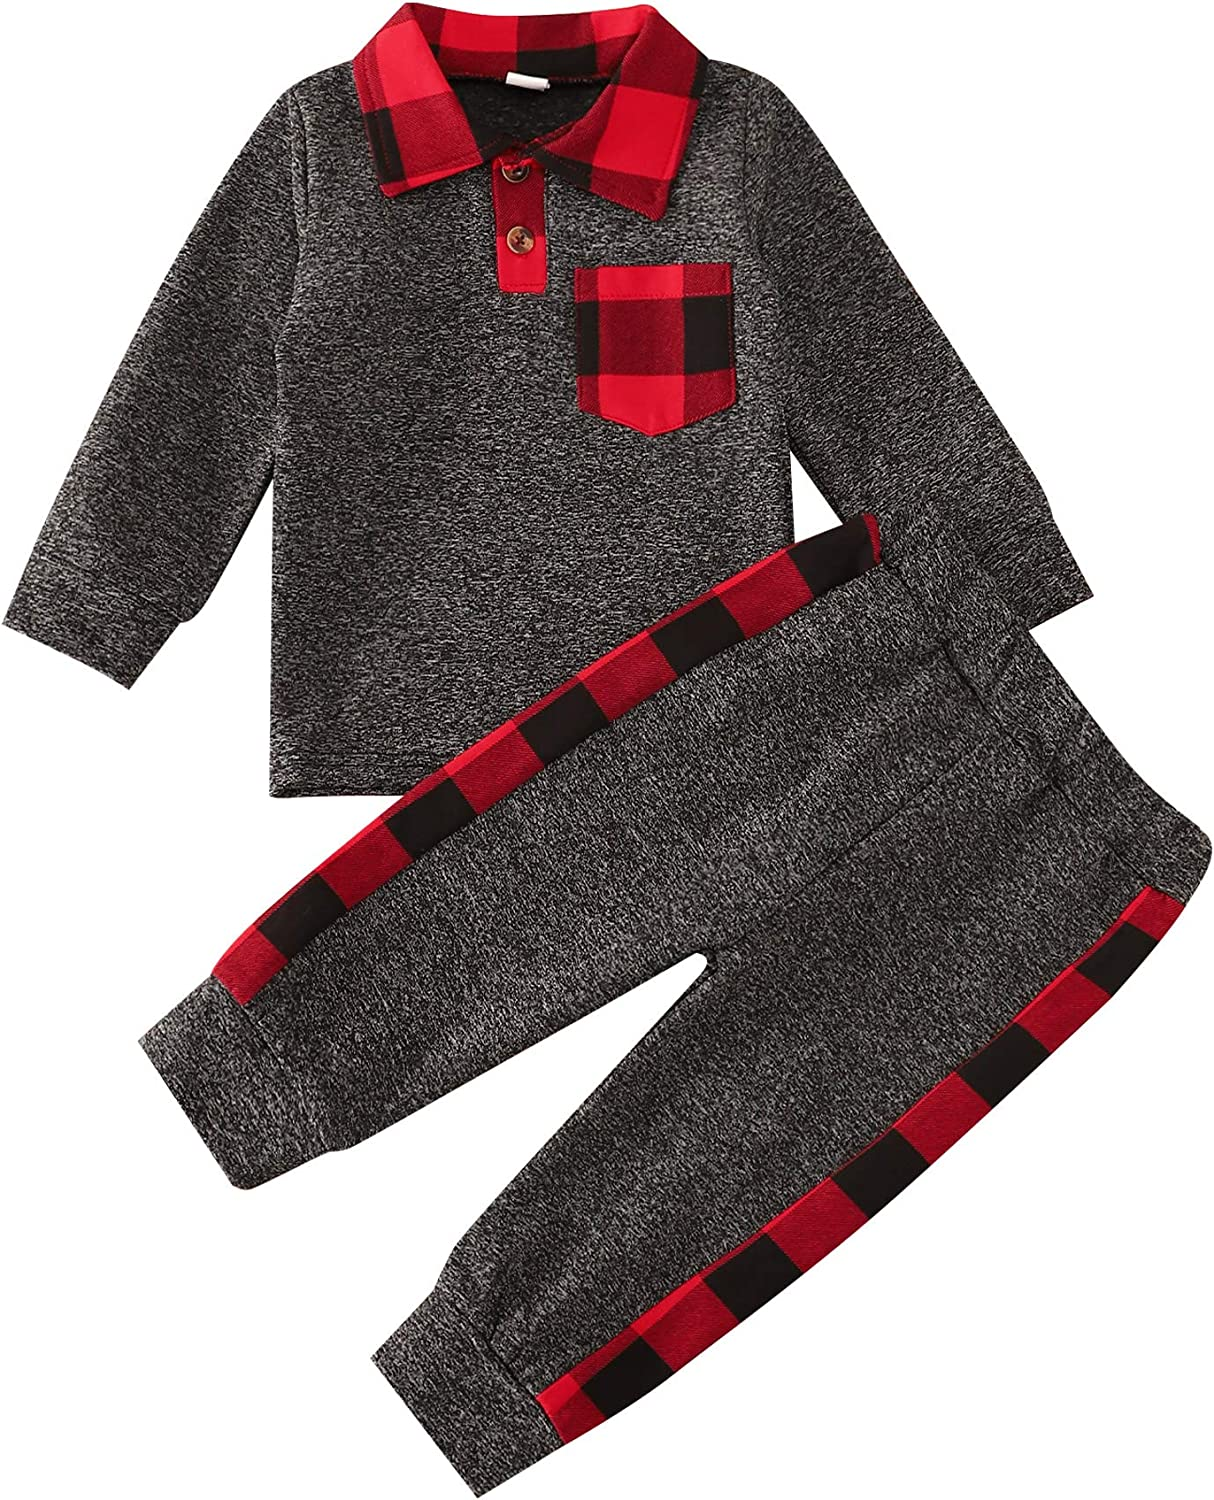 itkidboy Baby Boy Outfits Long Sleeve Stripe Sweatshirt Top +Pants 2PCS Clothes Set